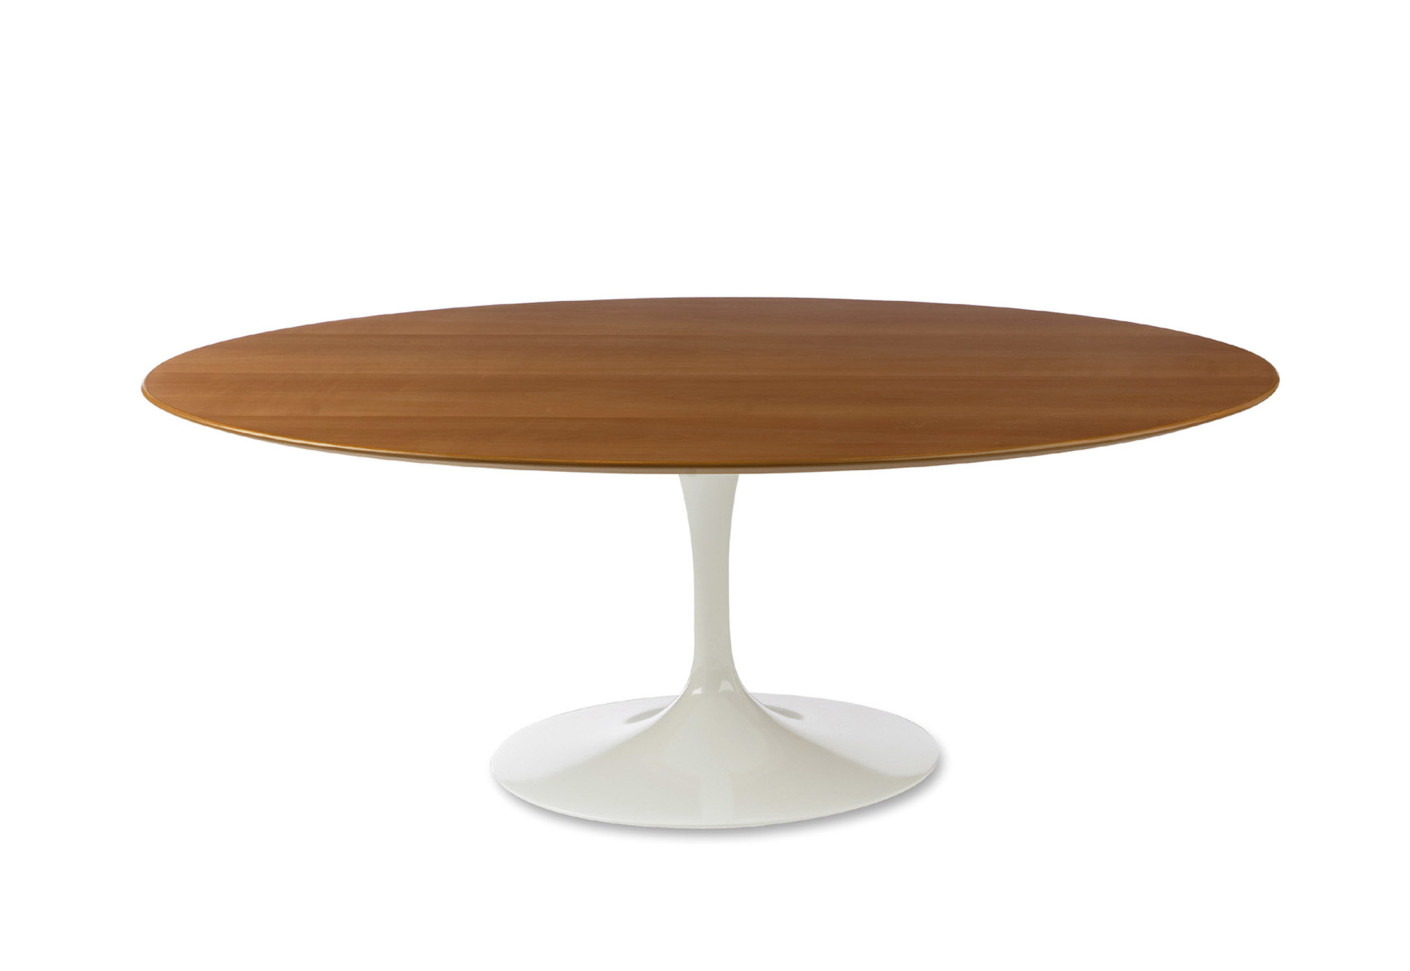 saarinen tulip dining table by knoll stylepark. Black Bedroom Furniture Sets. Home Design Ideas